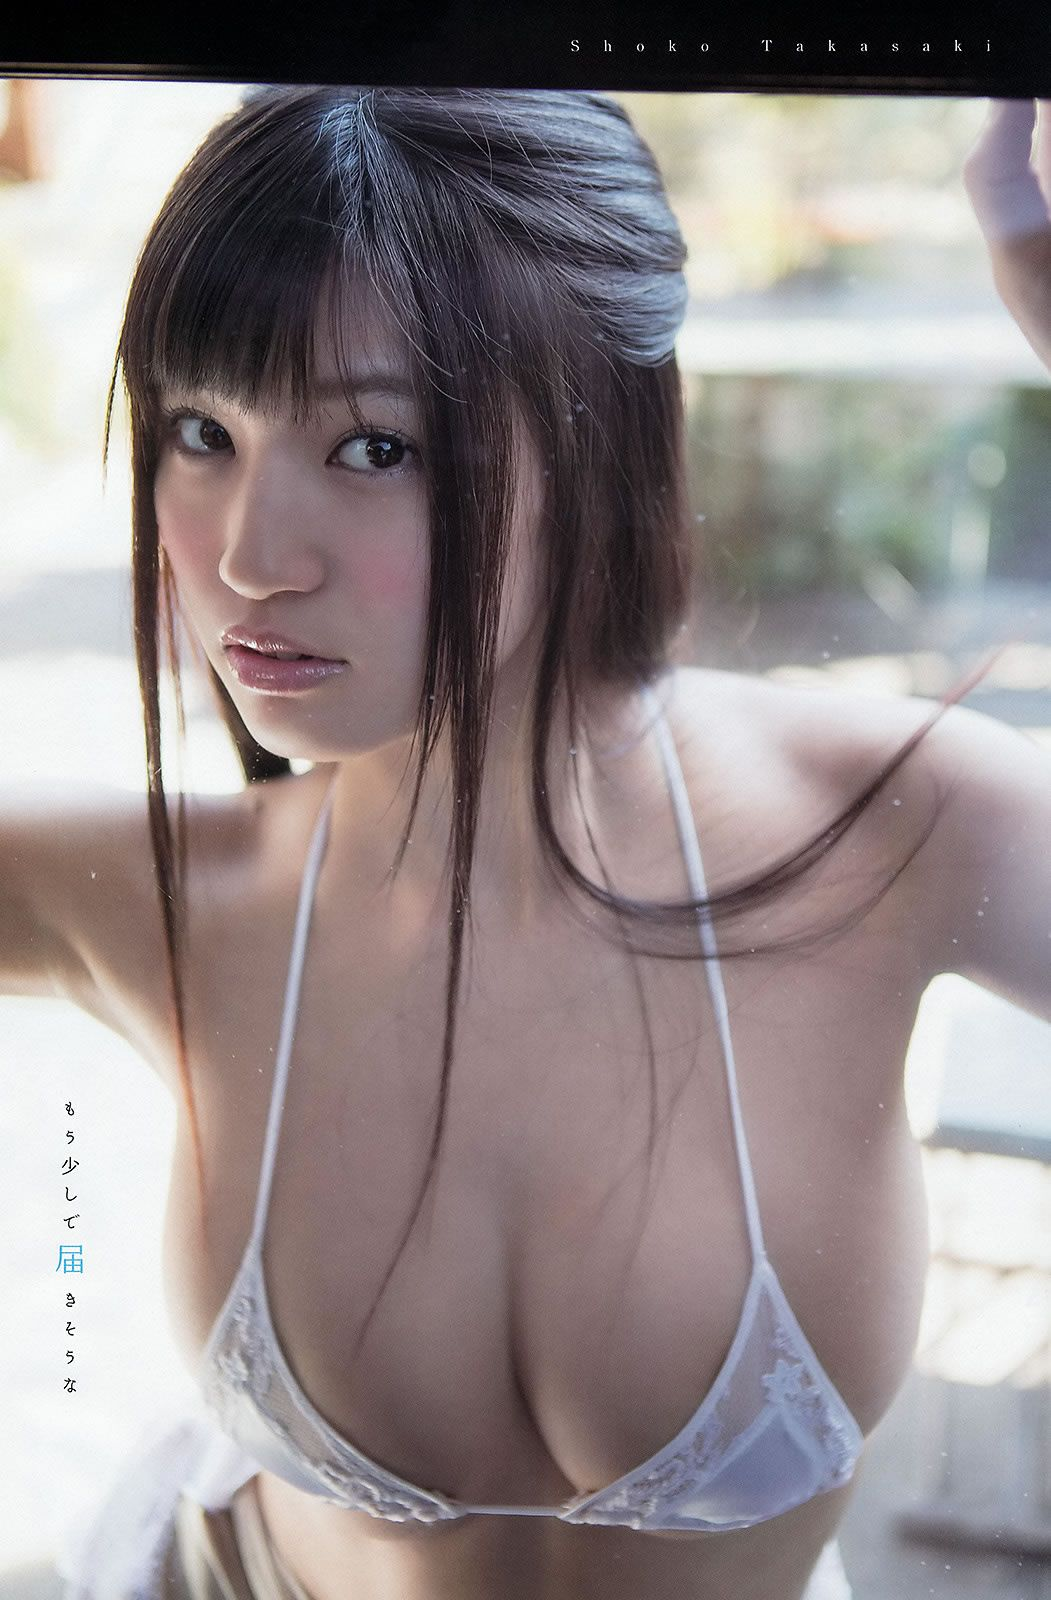 takasaki asian personals Find your asian beauty at the leading asian dating site with over 25 million  members join free now to get started.